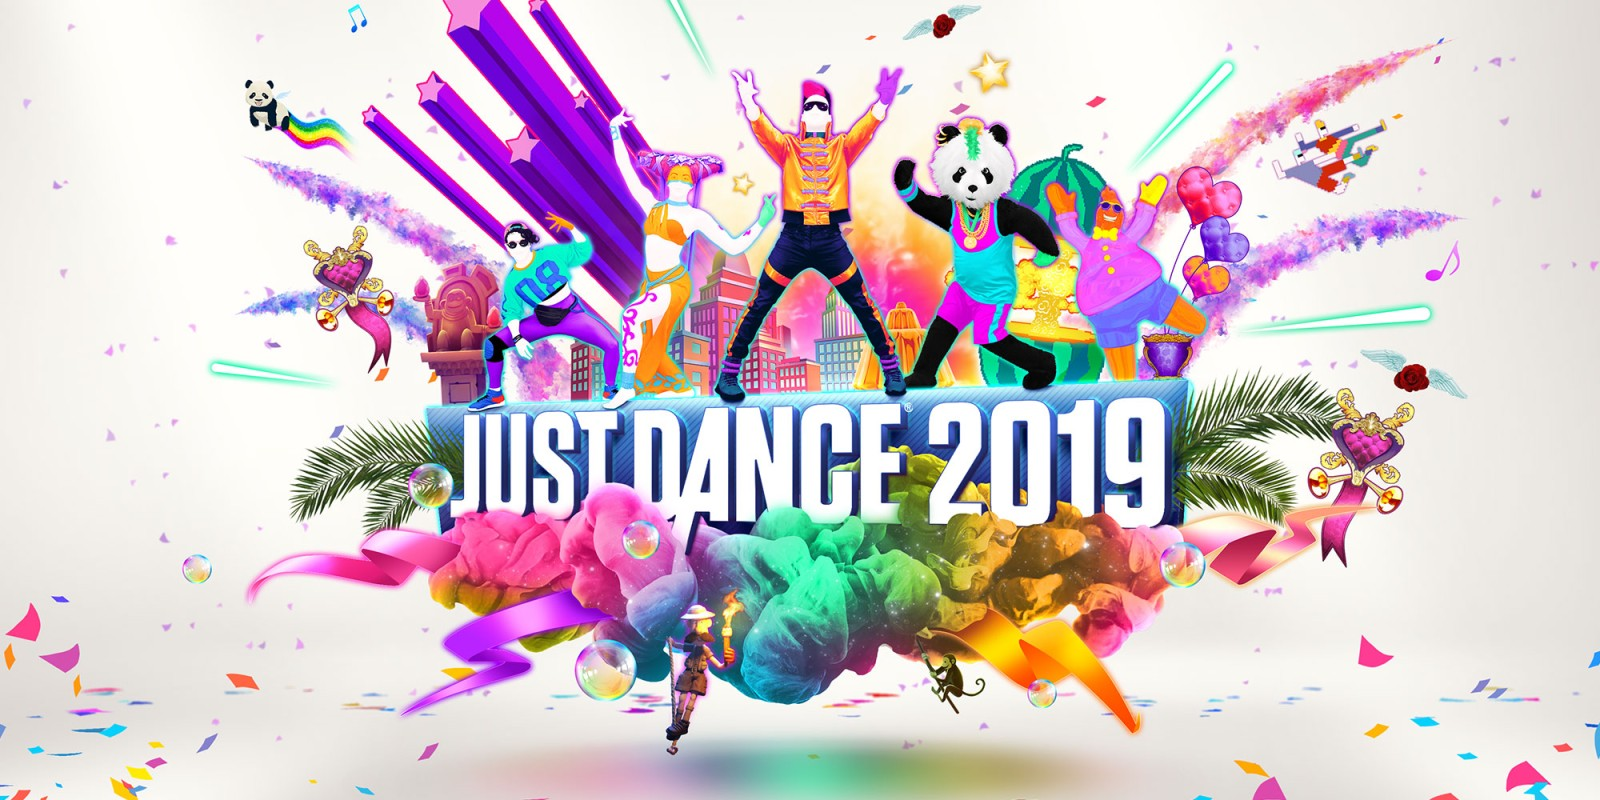 Just Dance 2019 Nintendo Switch Juegos Nintendo